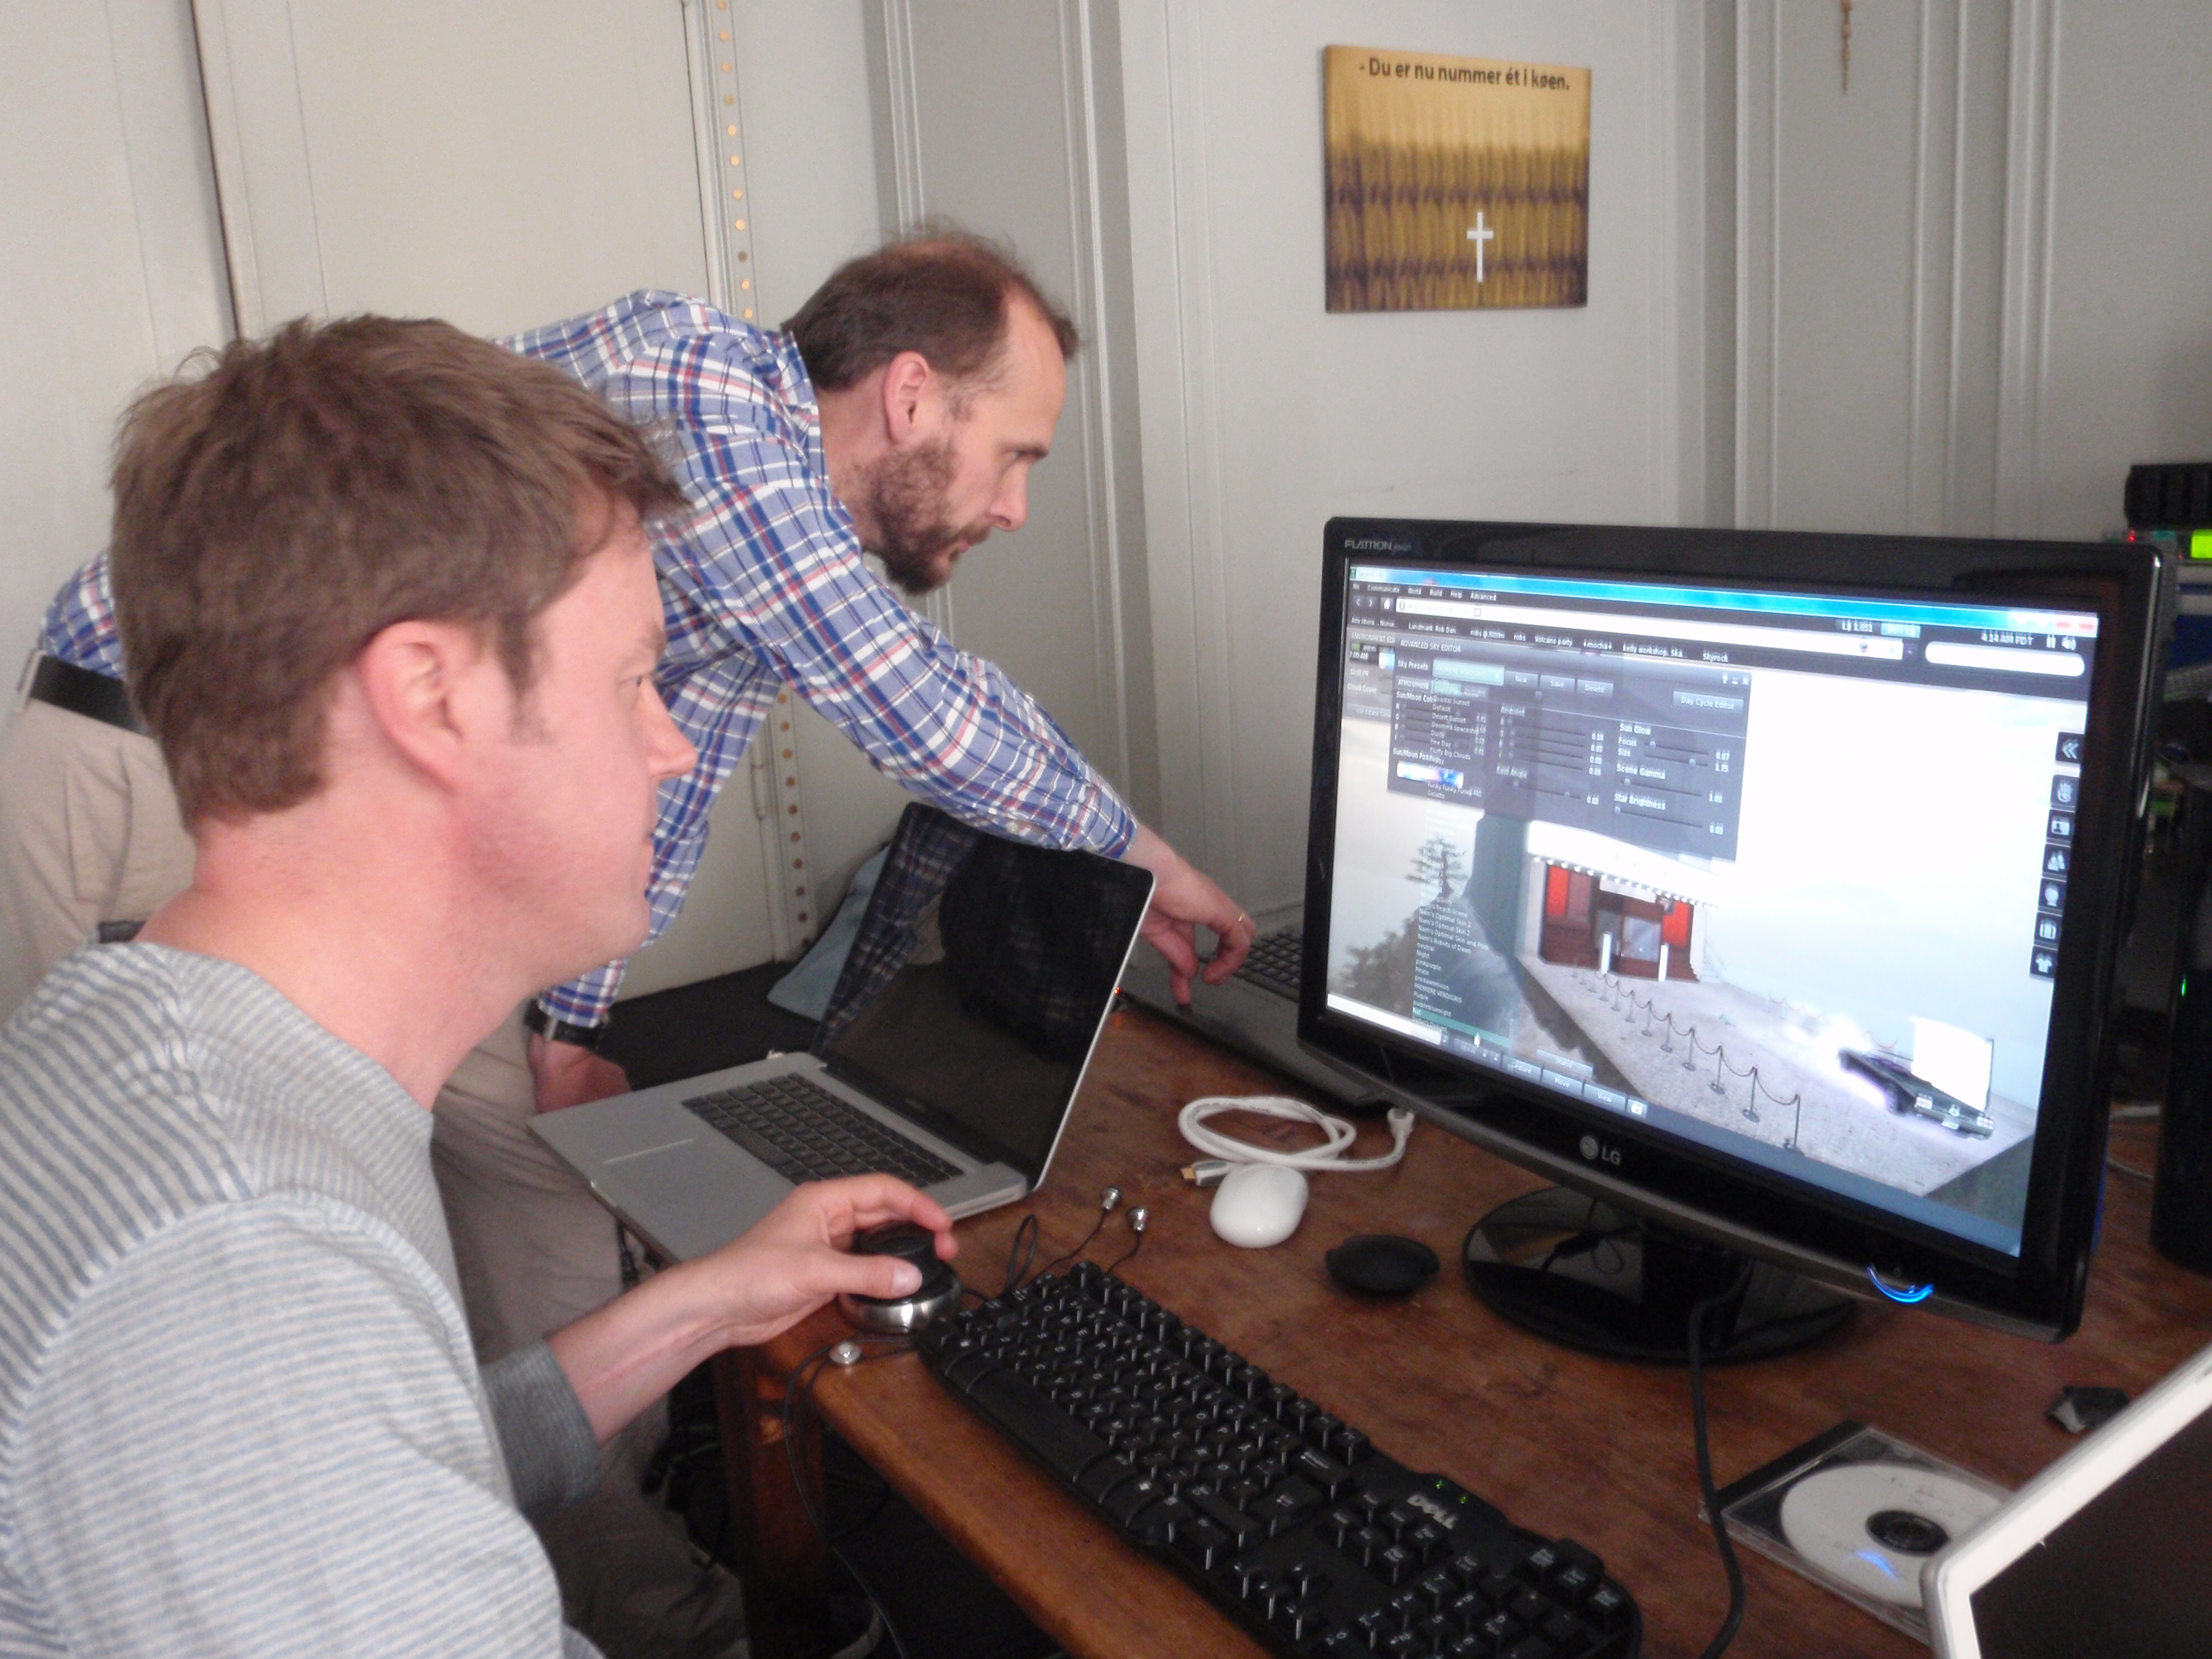 Rob Gould and Jeppe Raasthøj working on the SL/RL cinecast